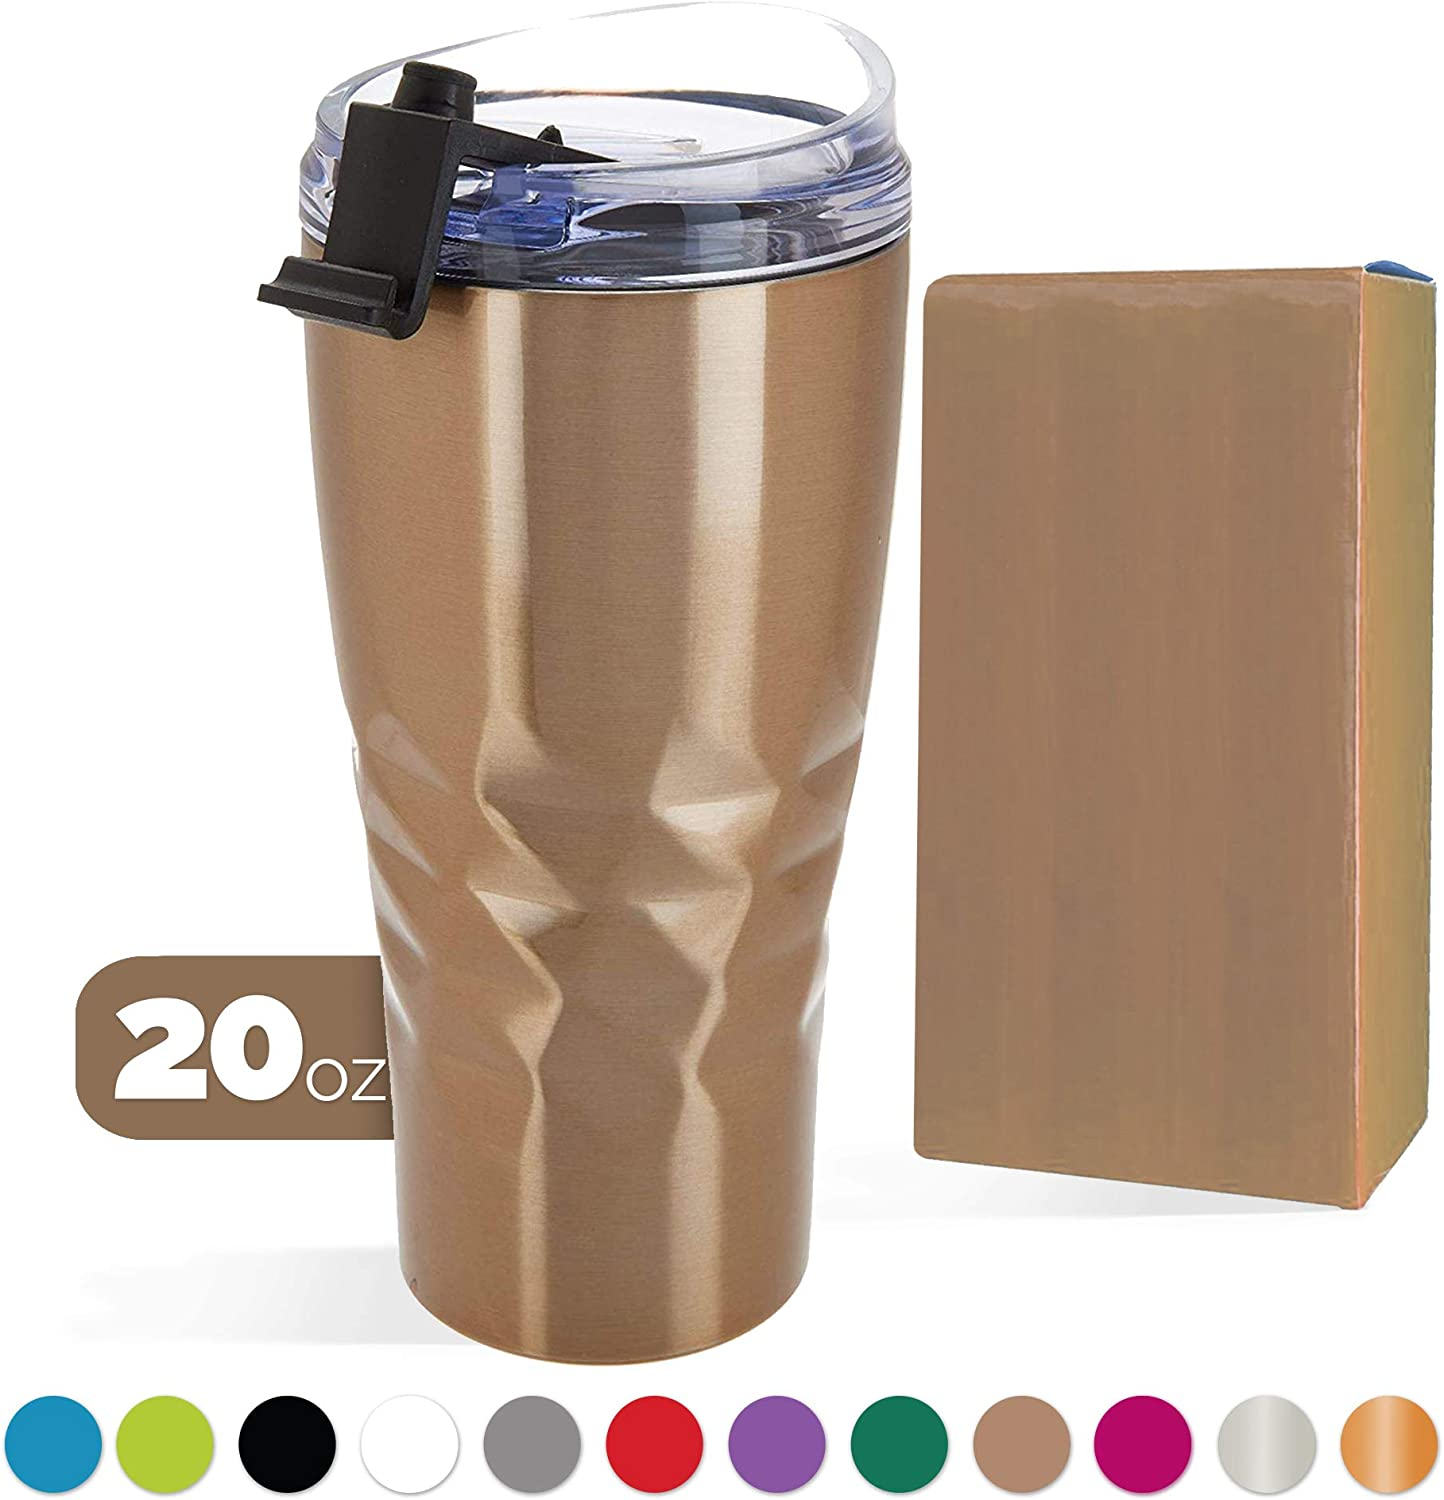 Primula Peak Hot or Cold Vacuum Sealed Triple Layer Copper Technology Tumbler with Matching Colored Gift Box • 20 Ounce • Champagne